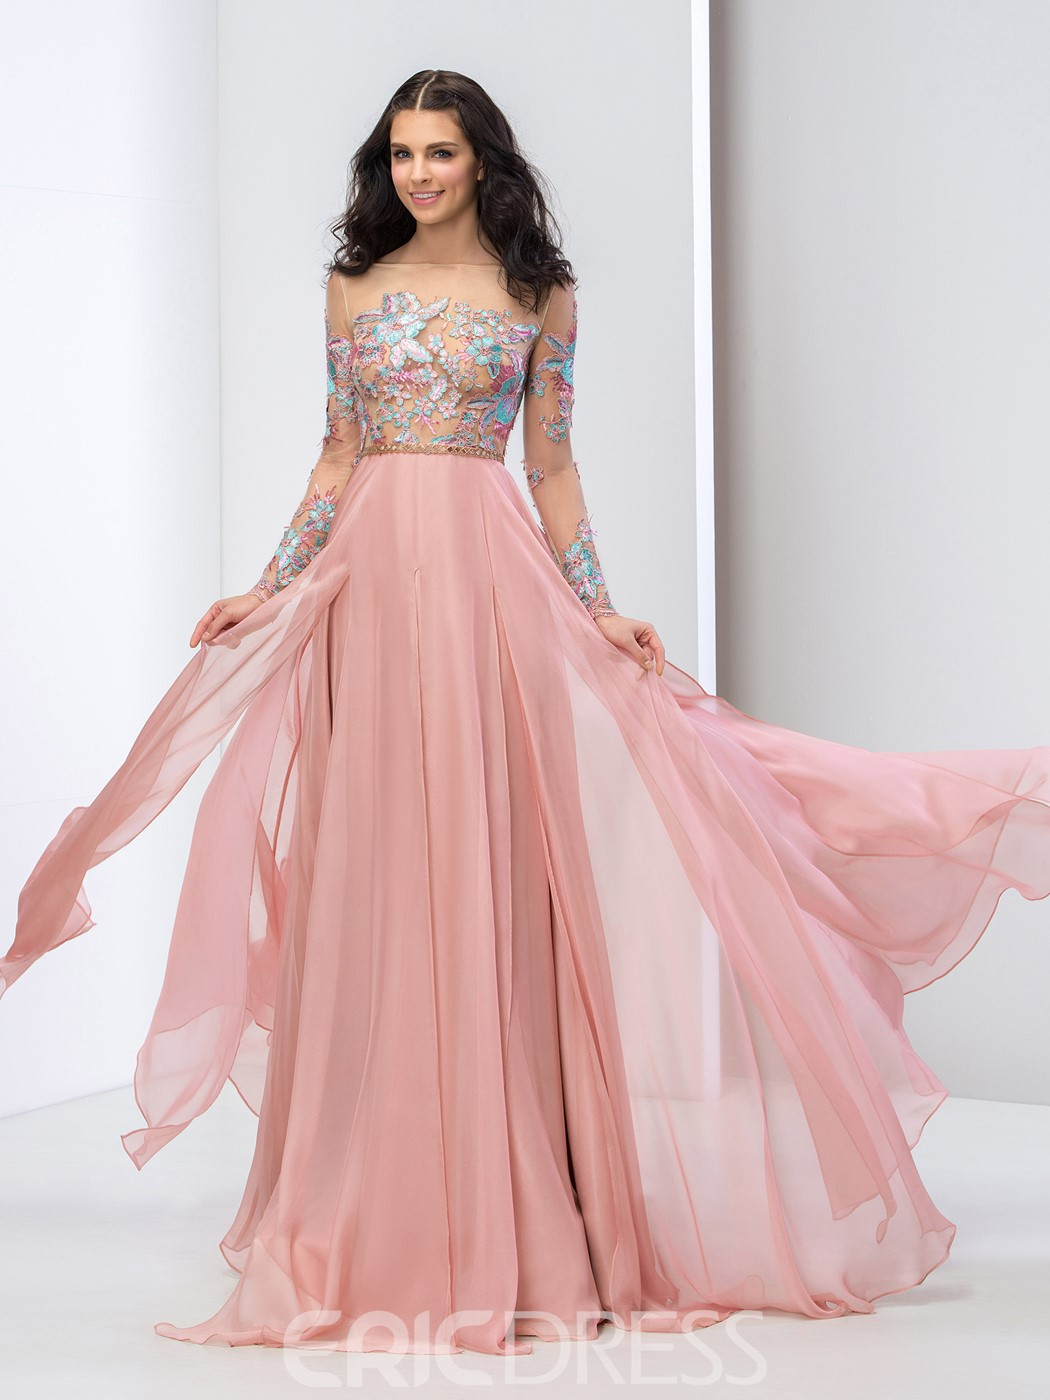 Online Cheap Prom Dresses, Plus Size Party Dresses - Ericdress.com